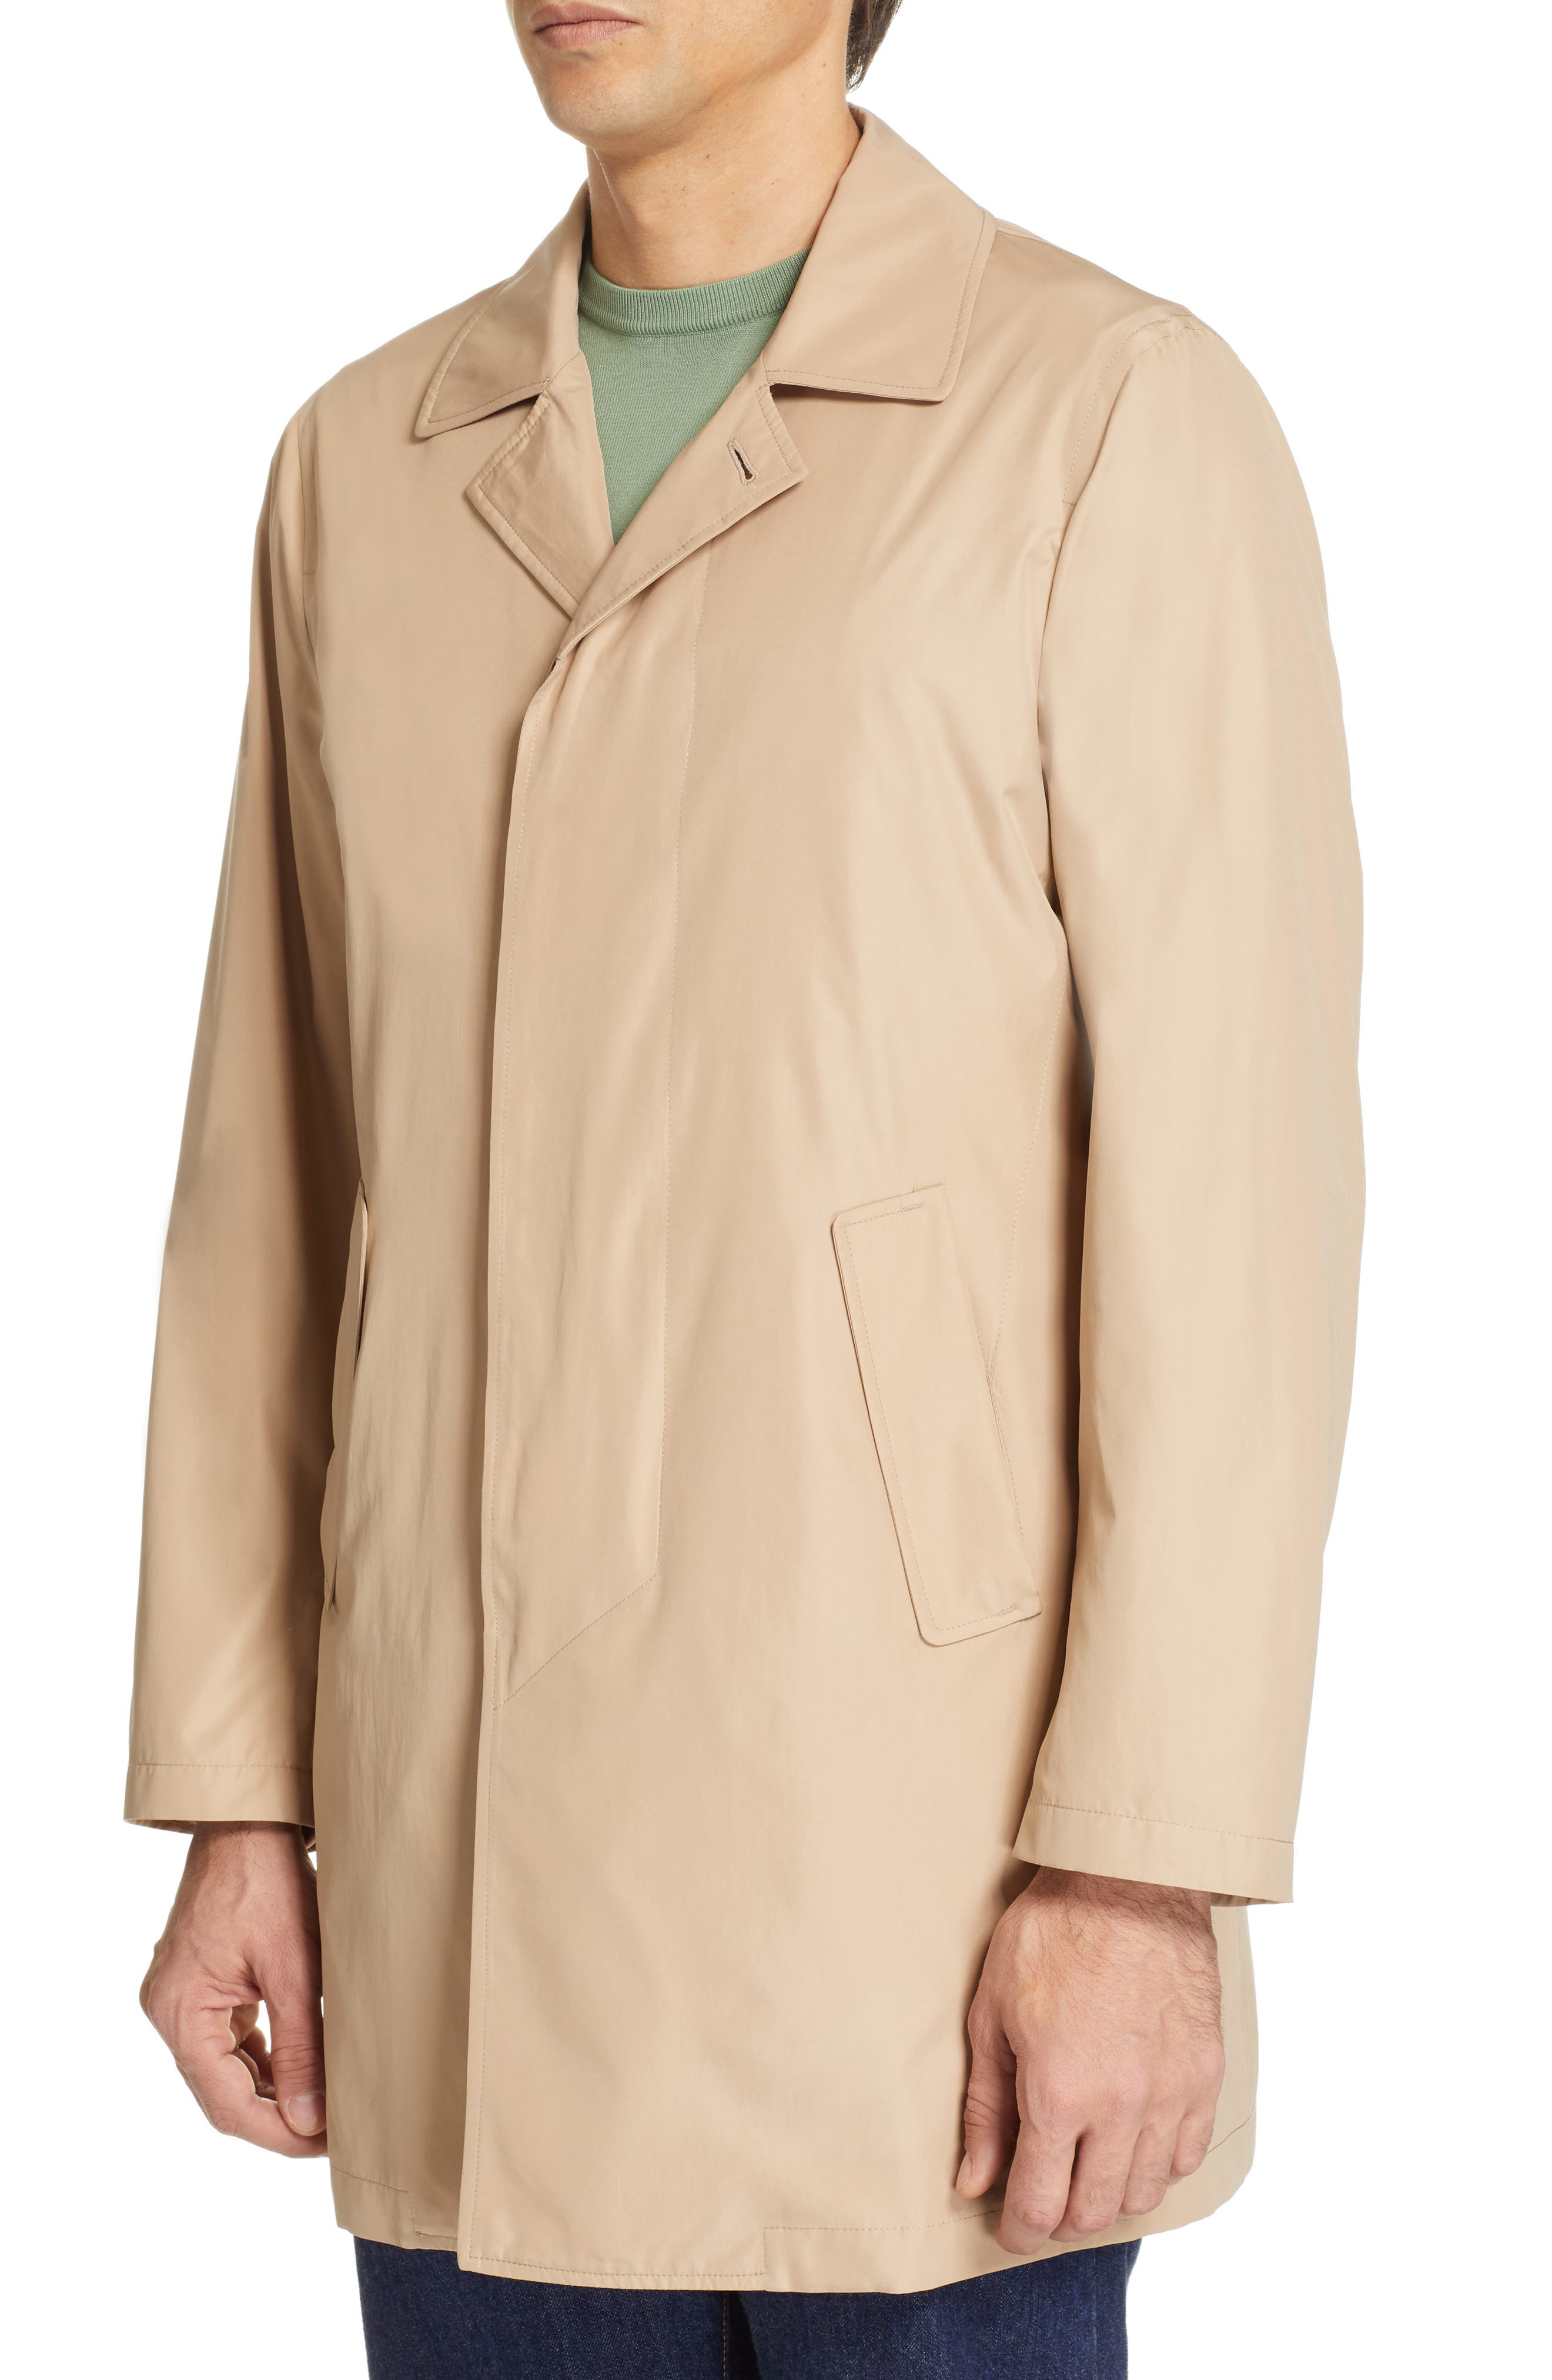 CANALI, Lightweight Overcoat, Alternate thumbnail 5, color, BEIGE